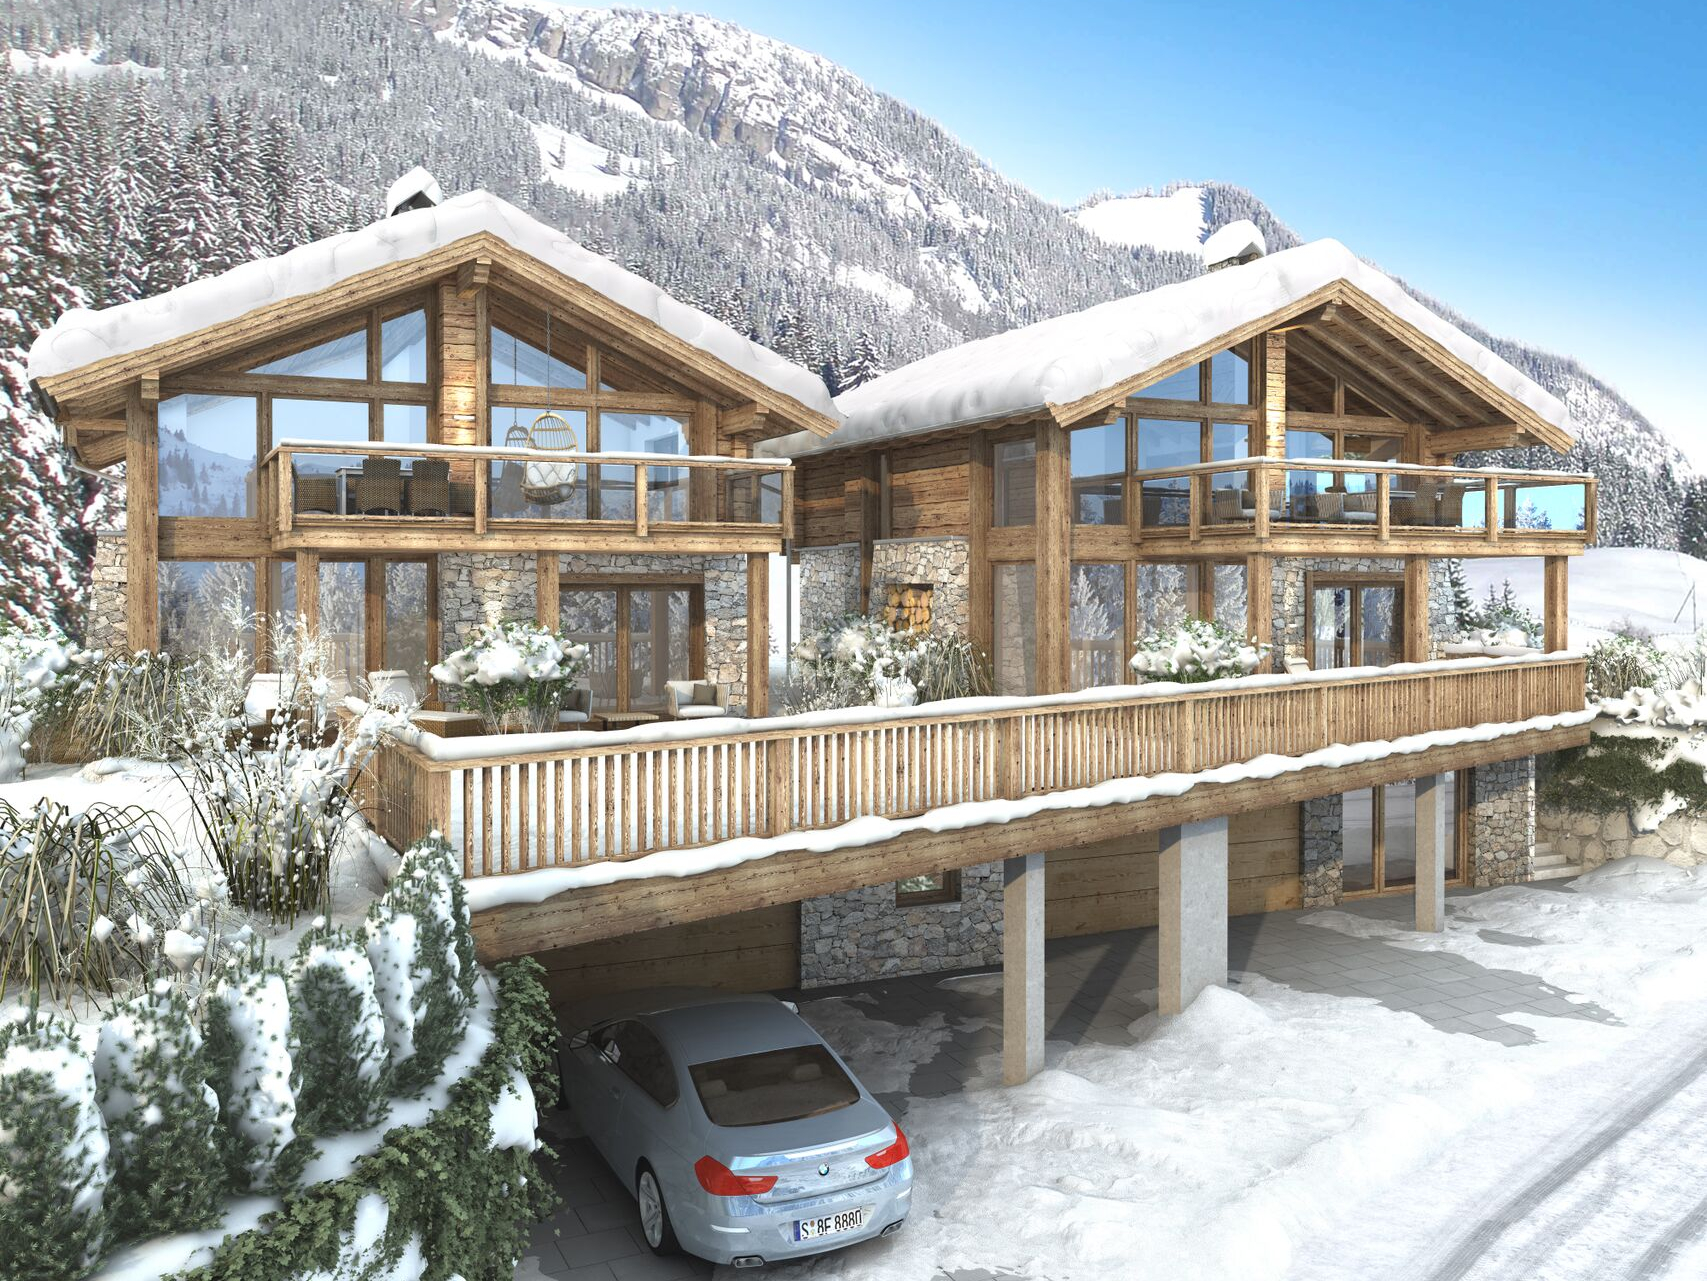 Chalet Ice Cool Residences Ice - 12 personen